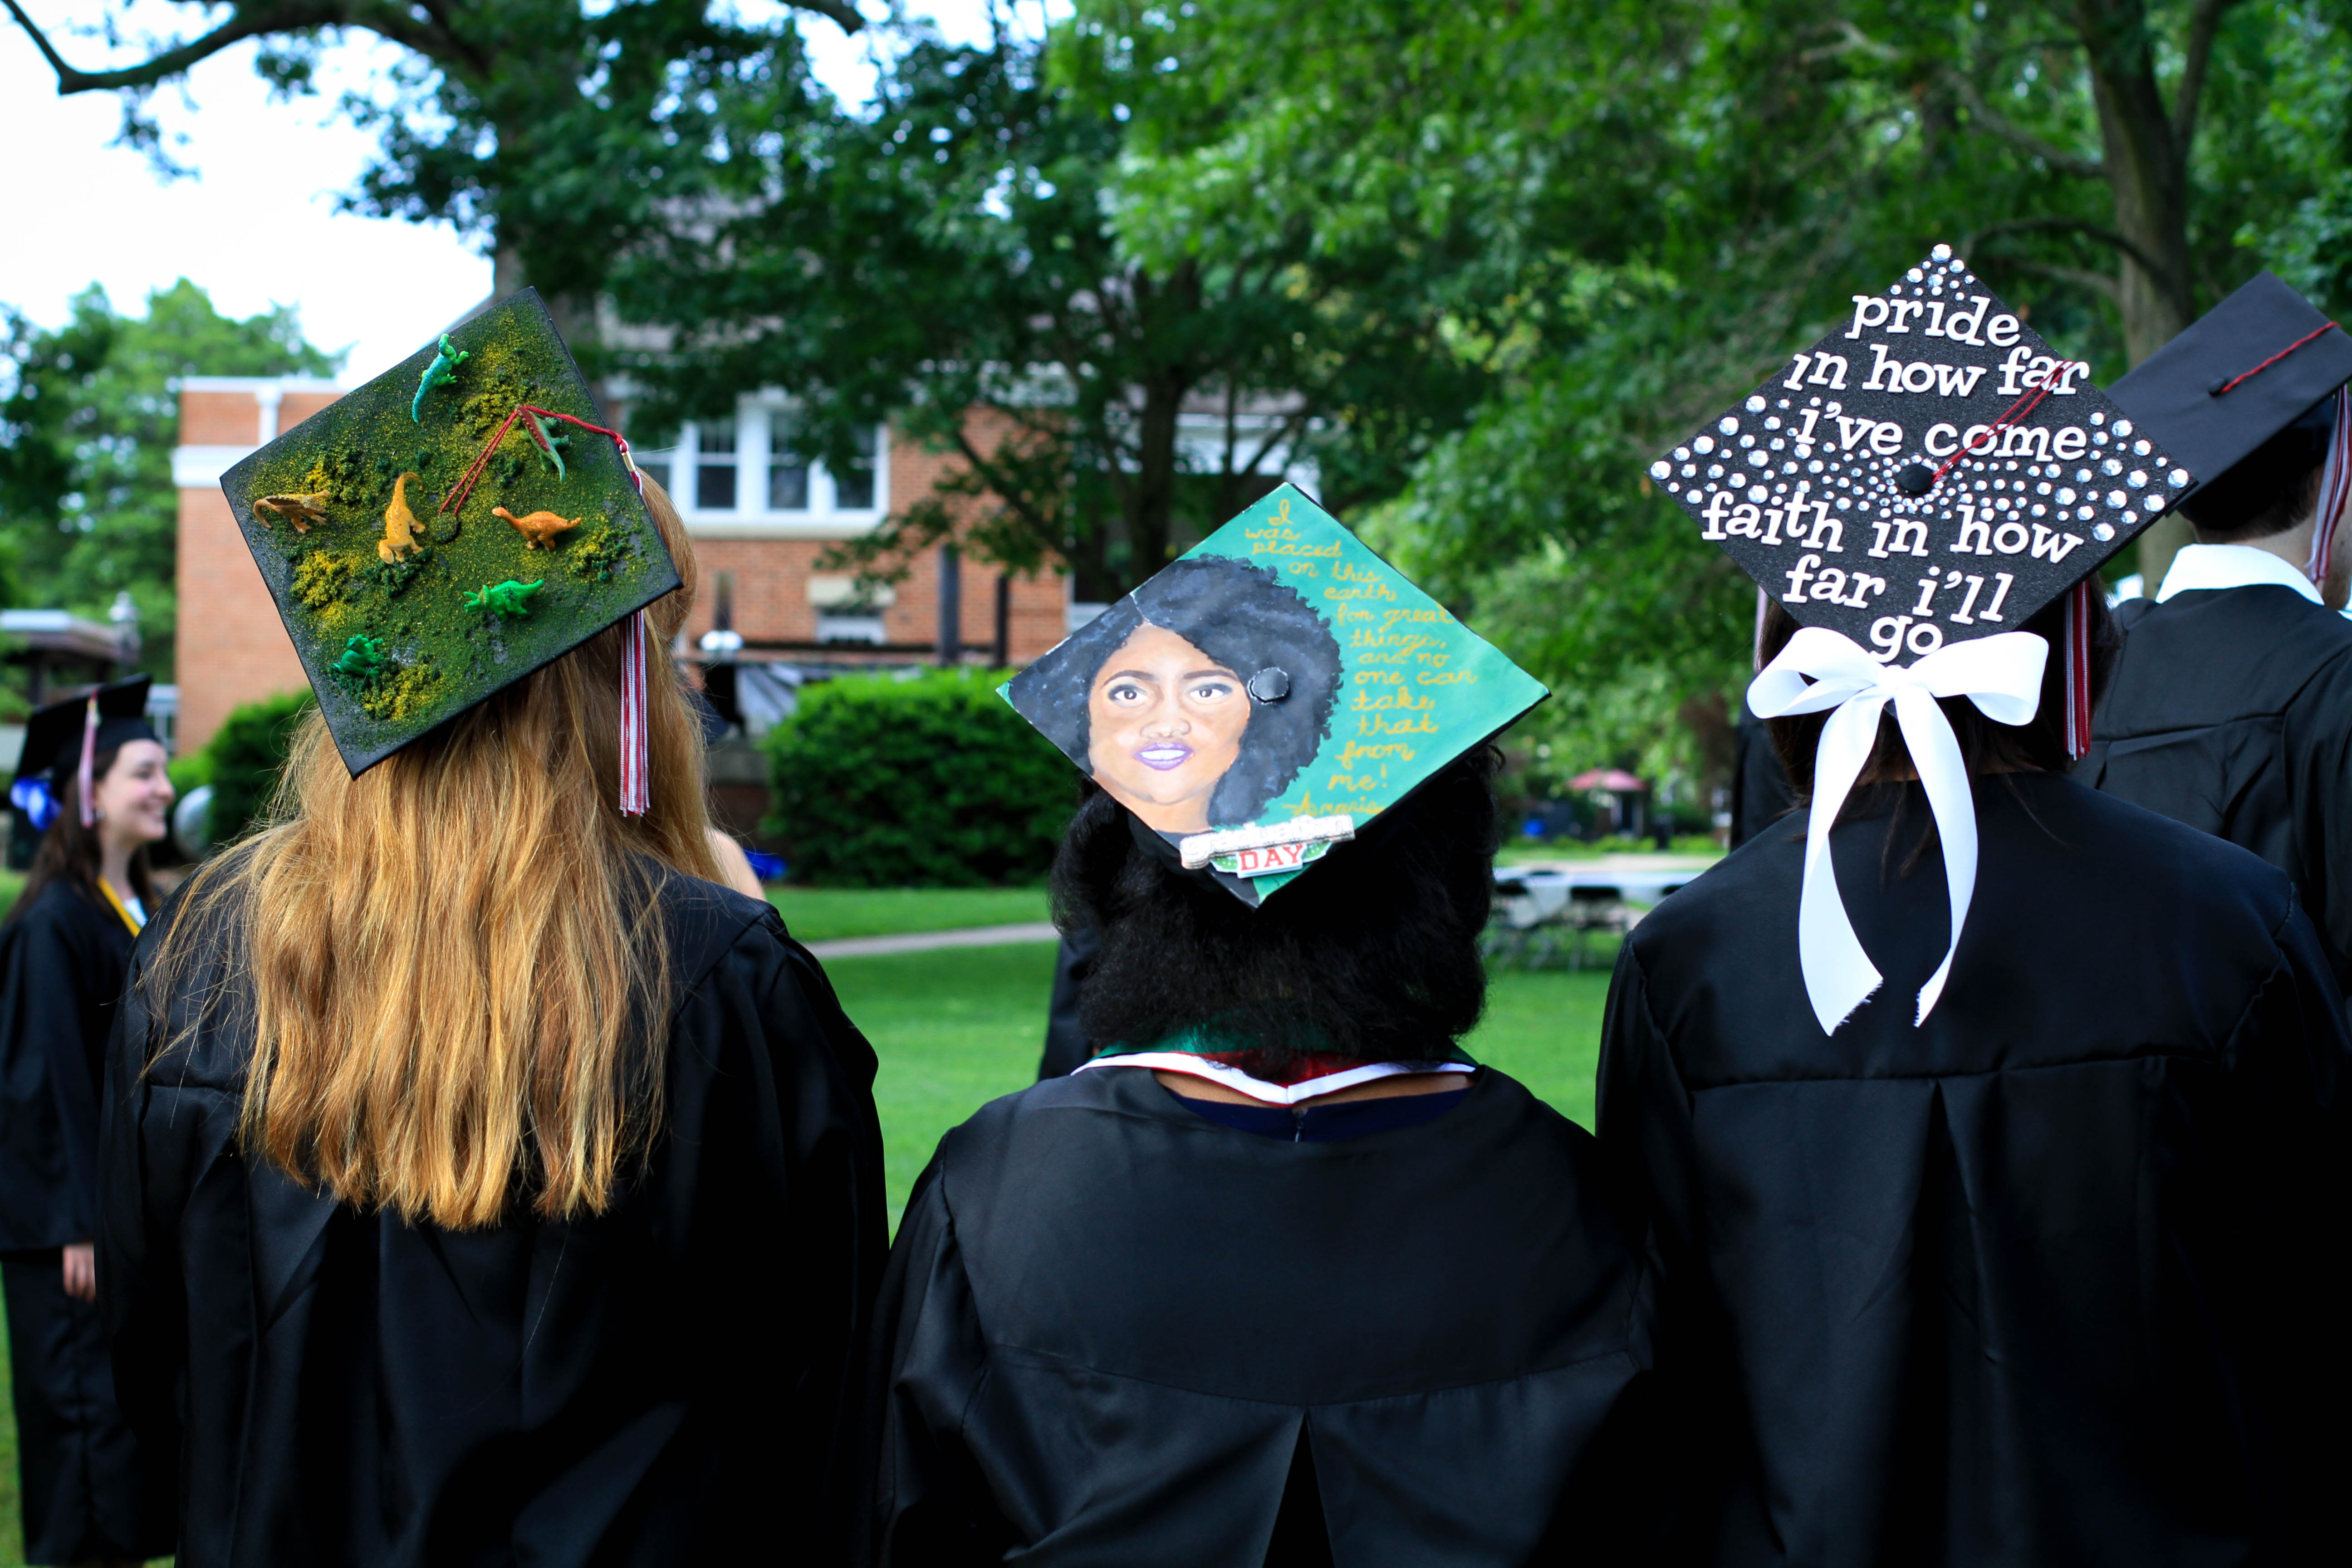 We loved seeing all of the decorated graduation caps!